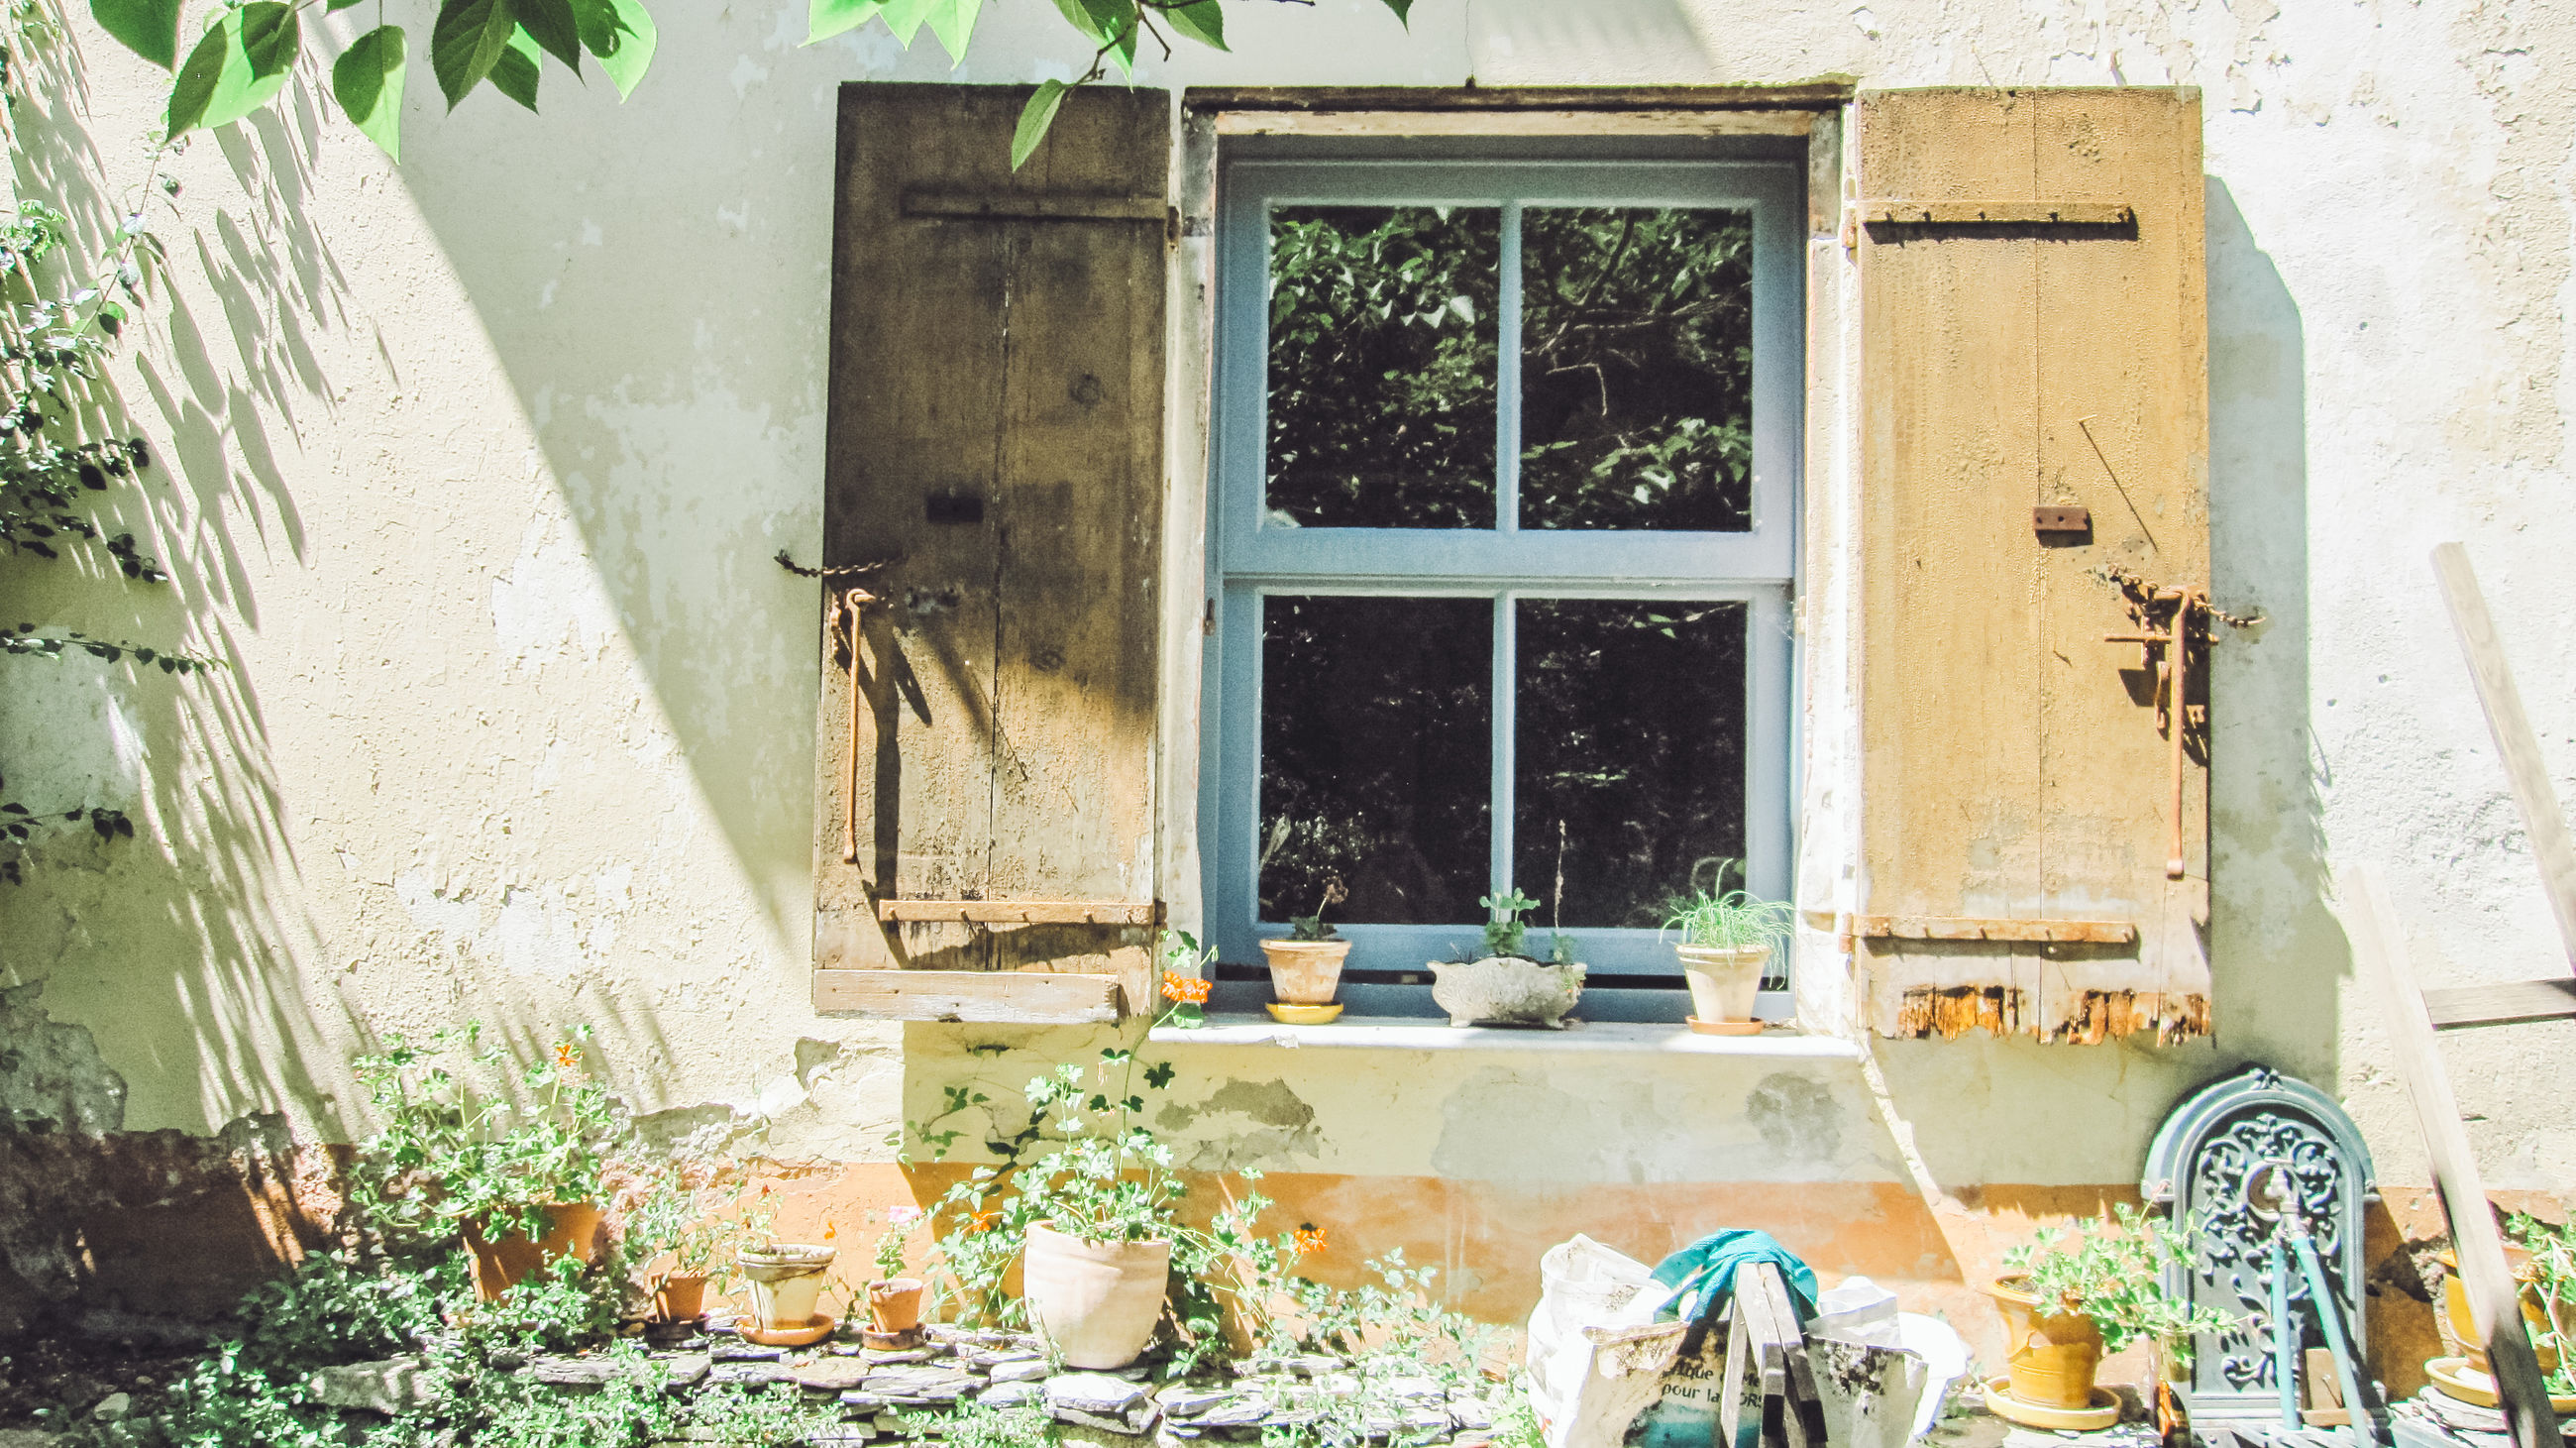 window, building exterior, architecture, built structure, building, day, no people, house, nature, plant, glass - material, transparent, outdoors, potted plant, old, door, entrance, residential district, sunlight, wall - building feature